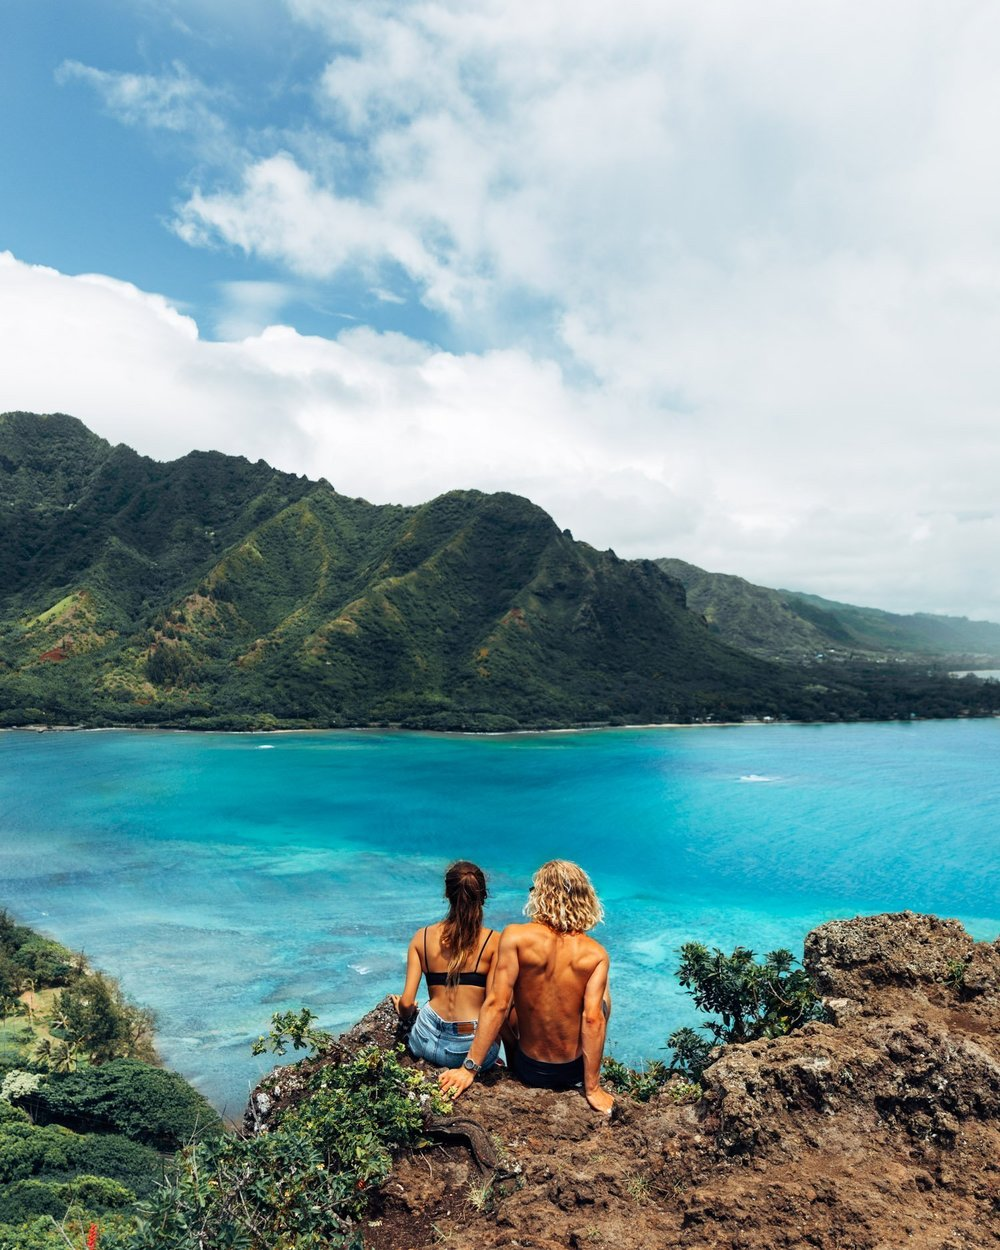 Cosmos Companions Morgan McDougall and Tahnee Pinches at the Crouching Lion Hike in Oahu Hawaii.